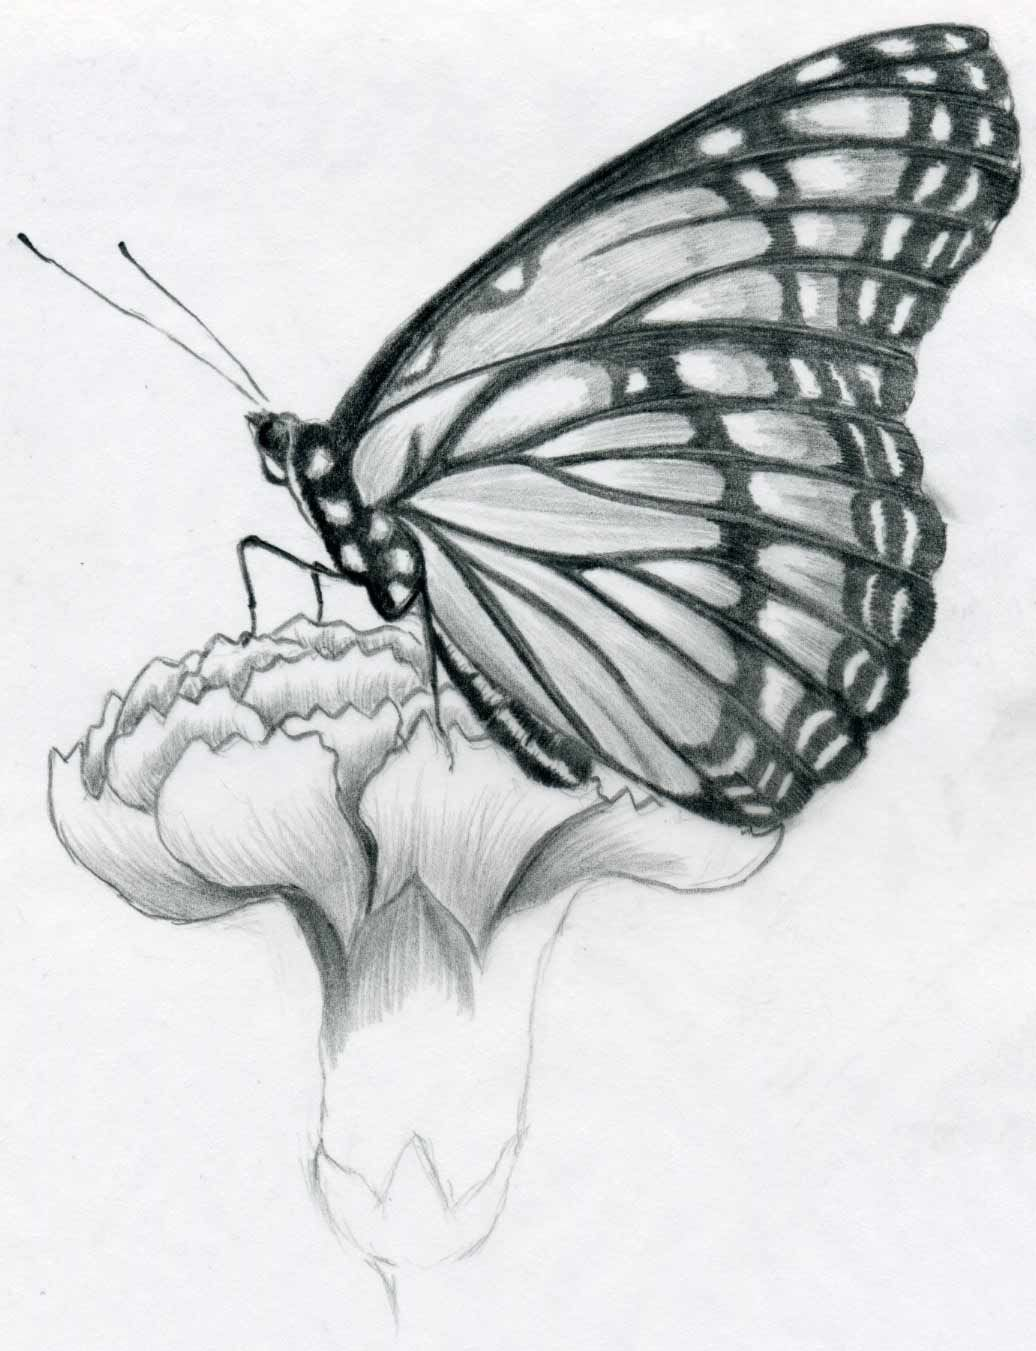 Black and white pencil sketches now observe and select first the darkest black parts on the wings and